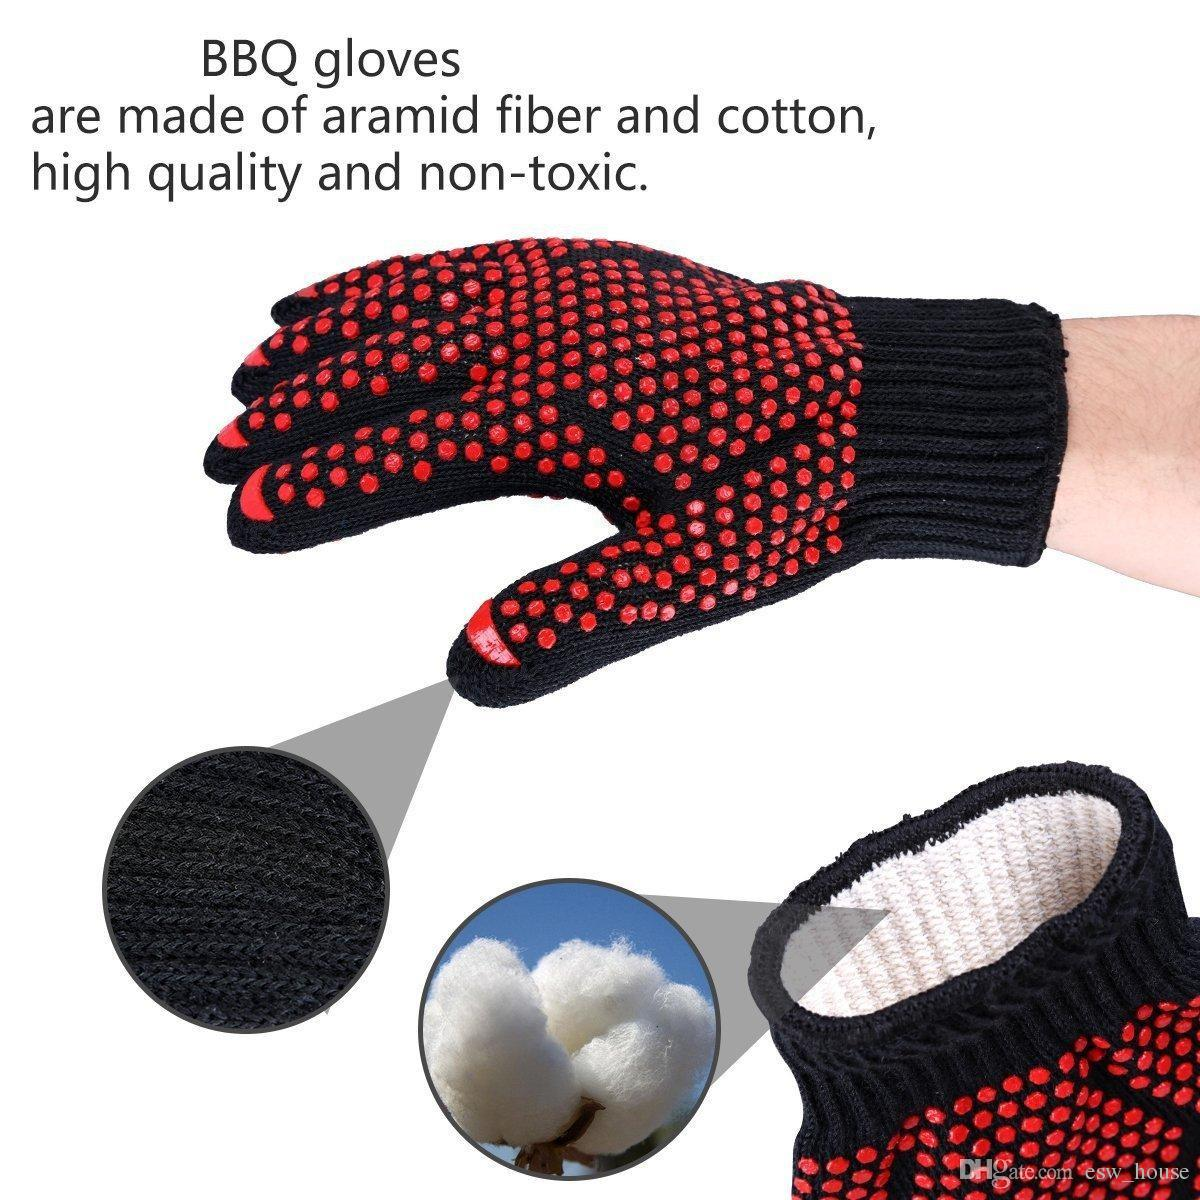 new Oven Mitts Gloves high Centigrade Instant Extreme Heat Resistant BBQ Gloves Lining Cotton Cooking Baking Grilling Oven Mitts